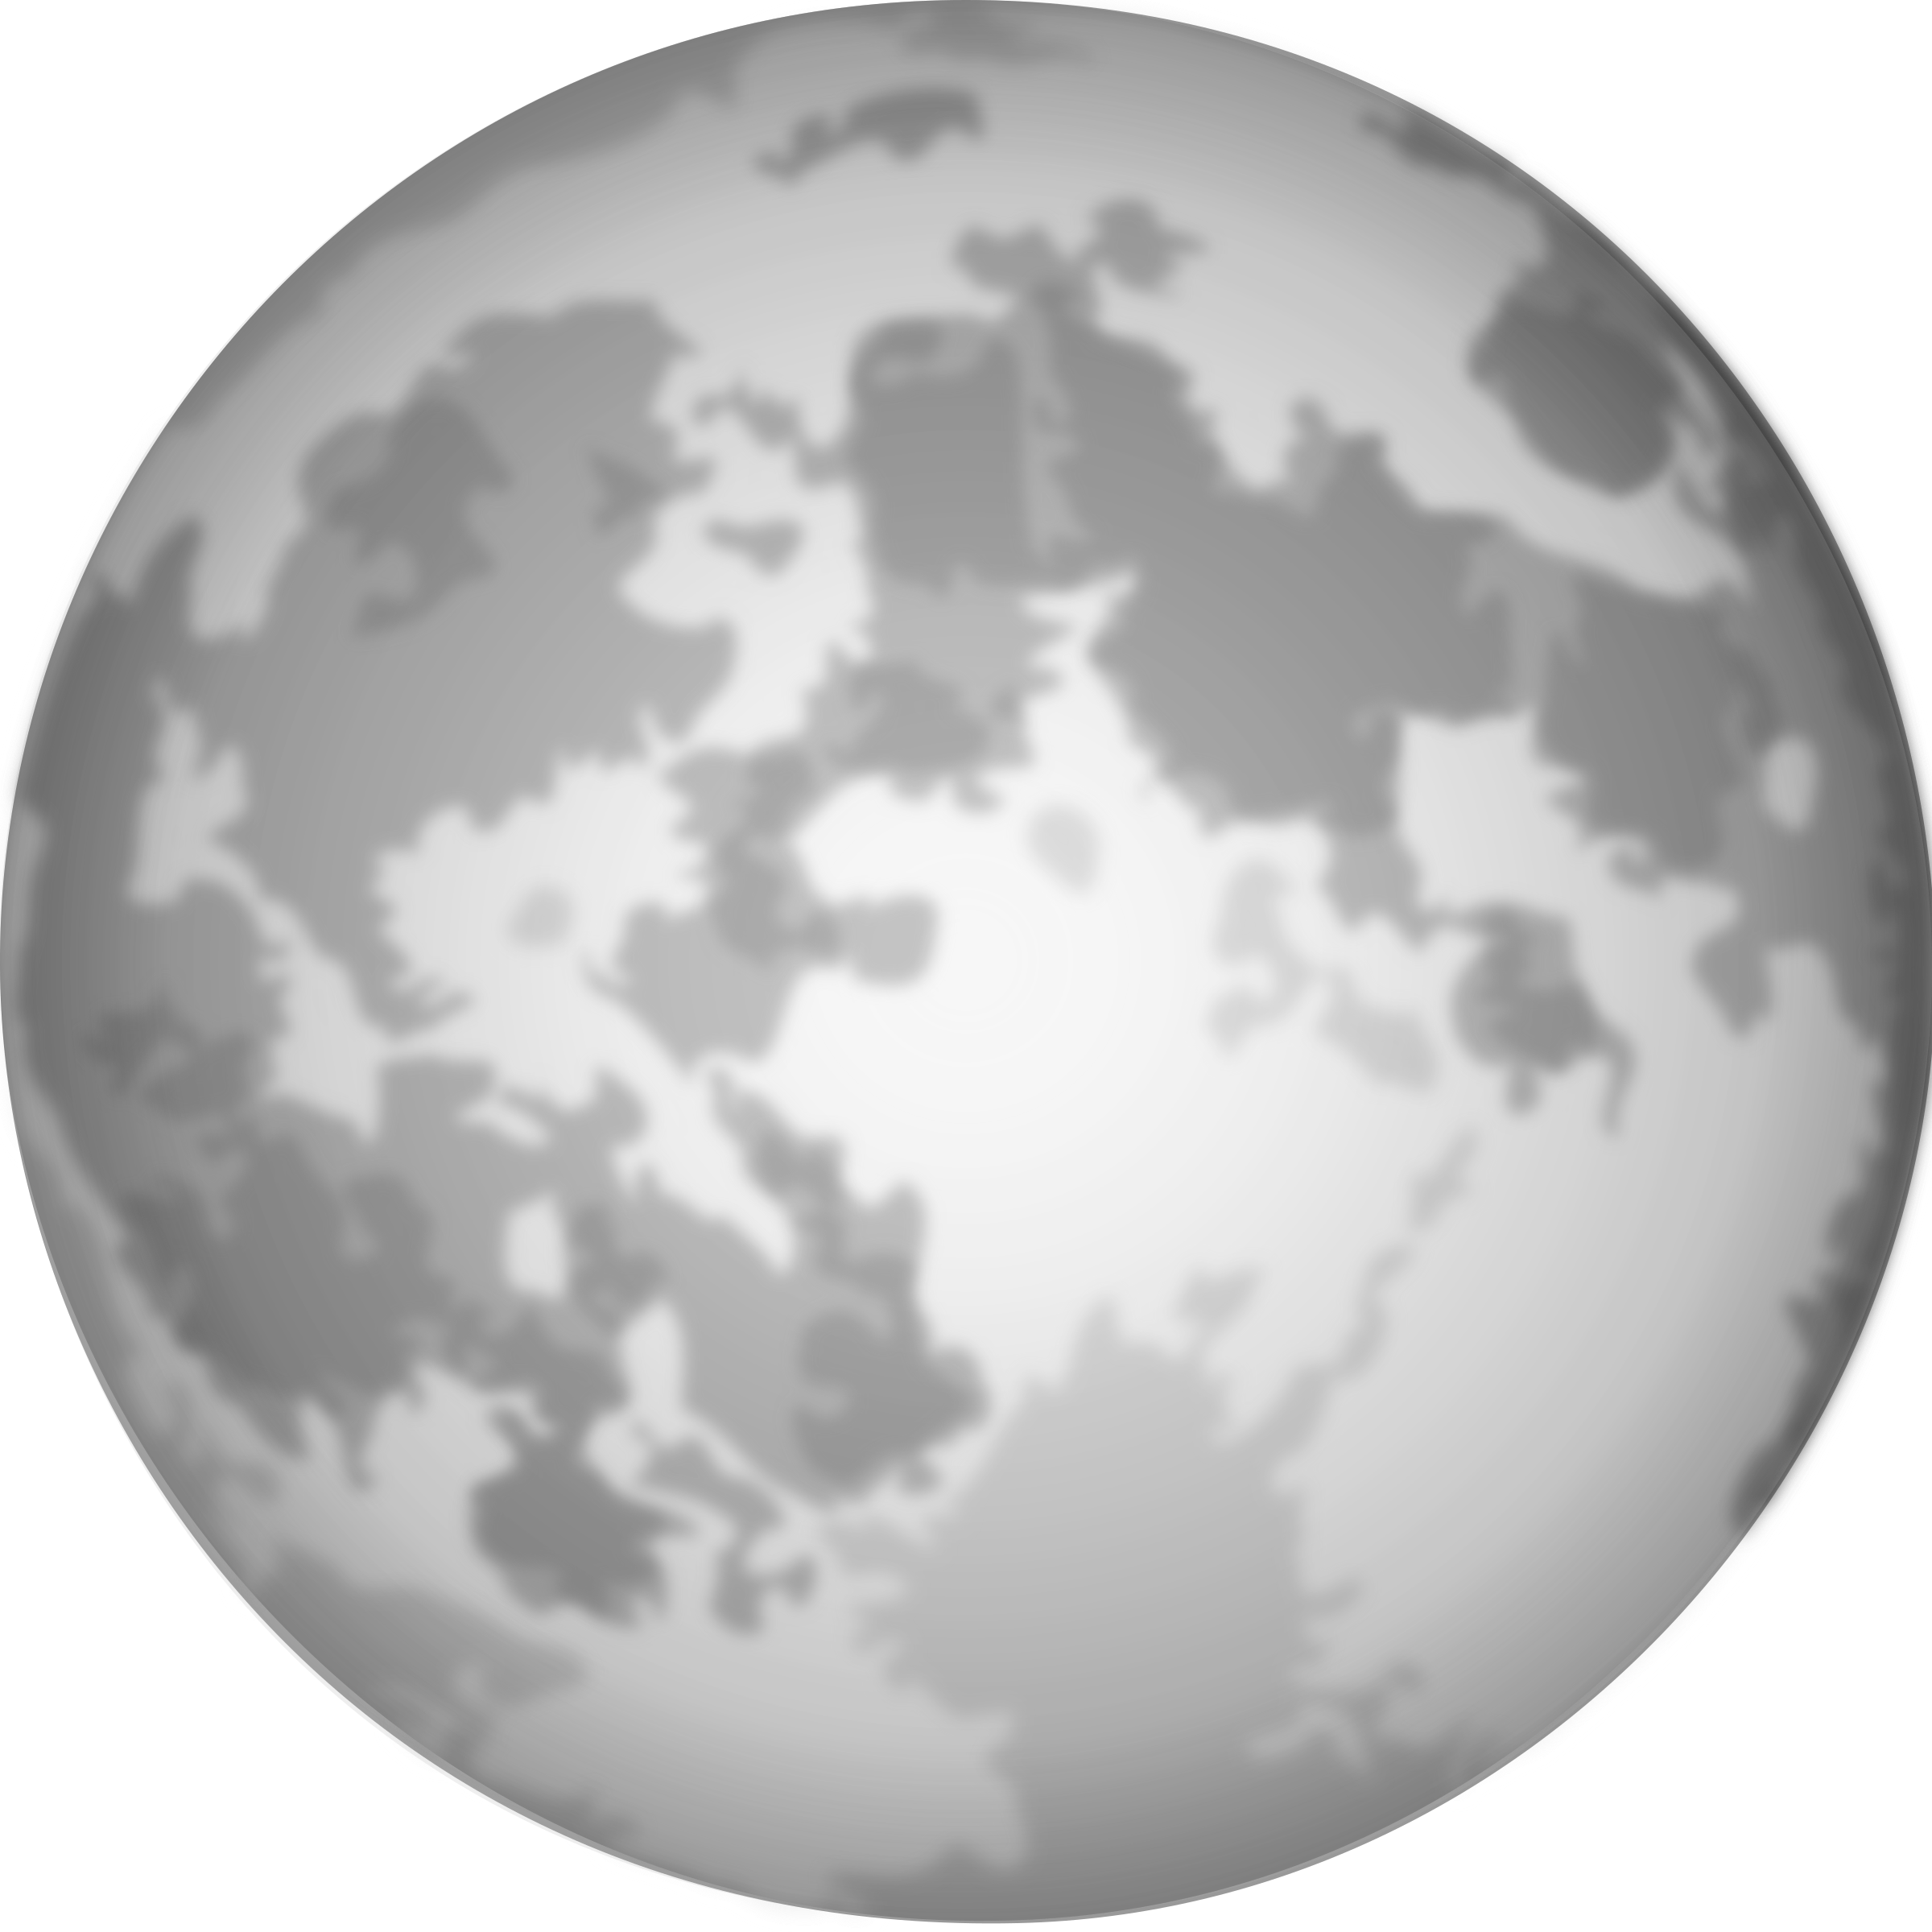 Moon clipart clear background #3